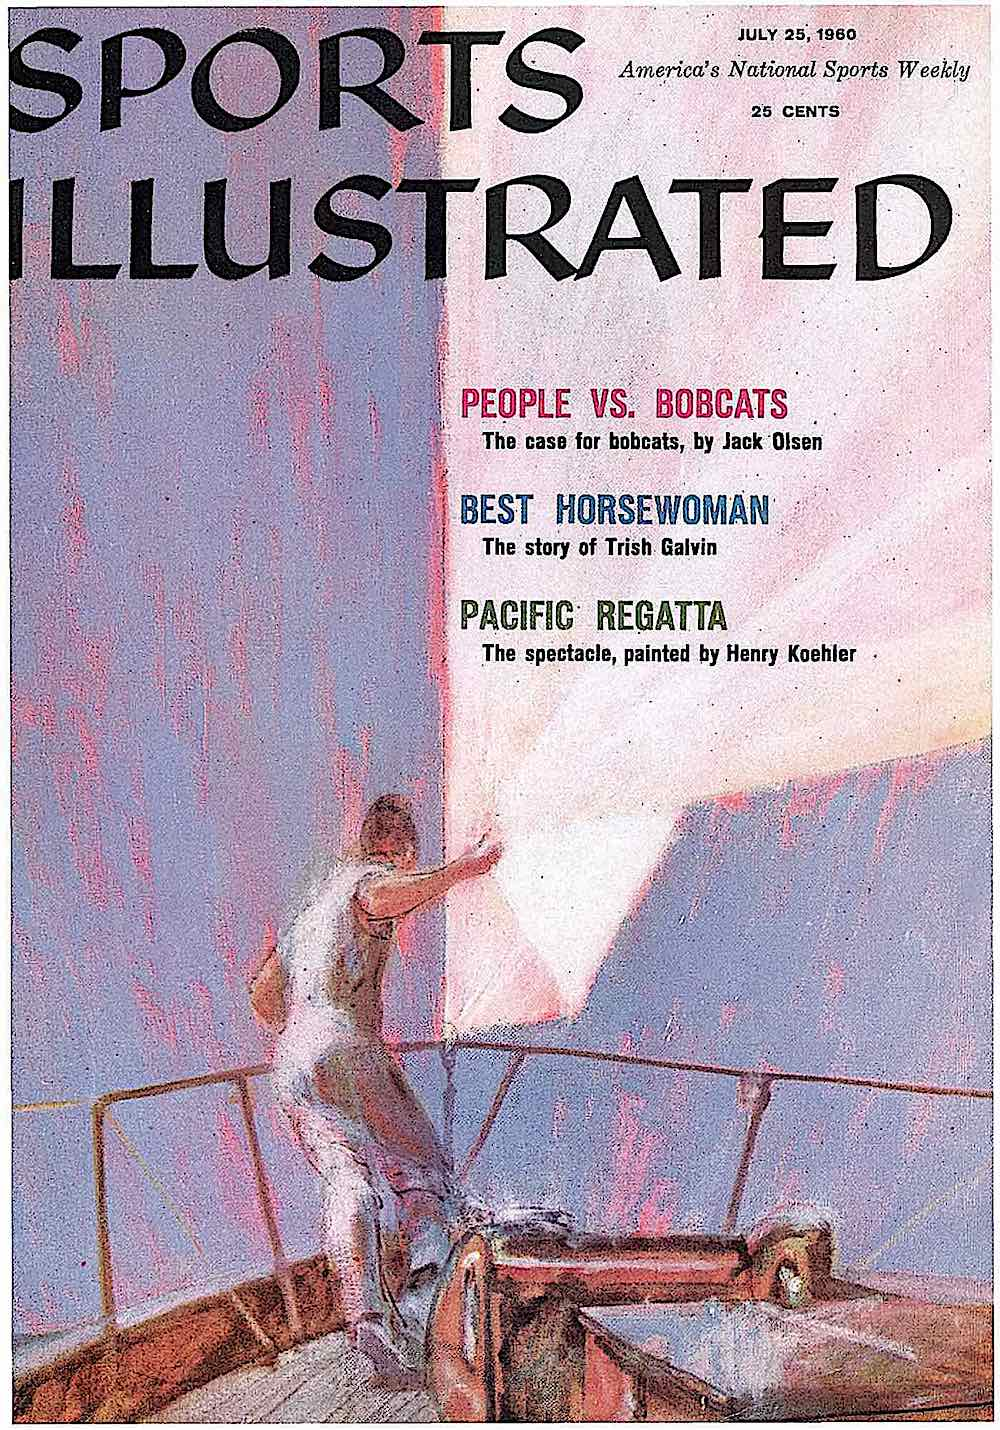 a 1960 Henry Koehler illustration for July 25 Sports Illustrated magazine, a man on a regatta sailboat with purple sky